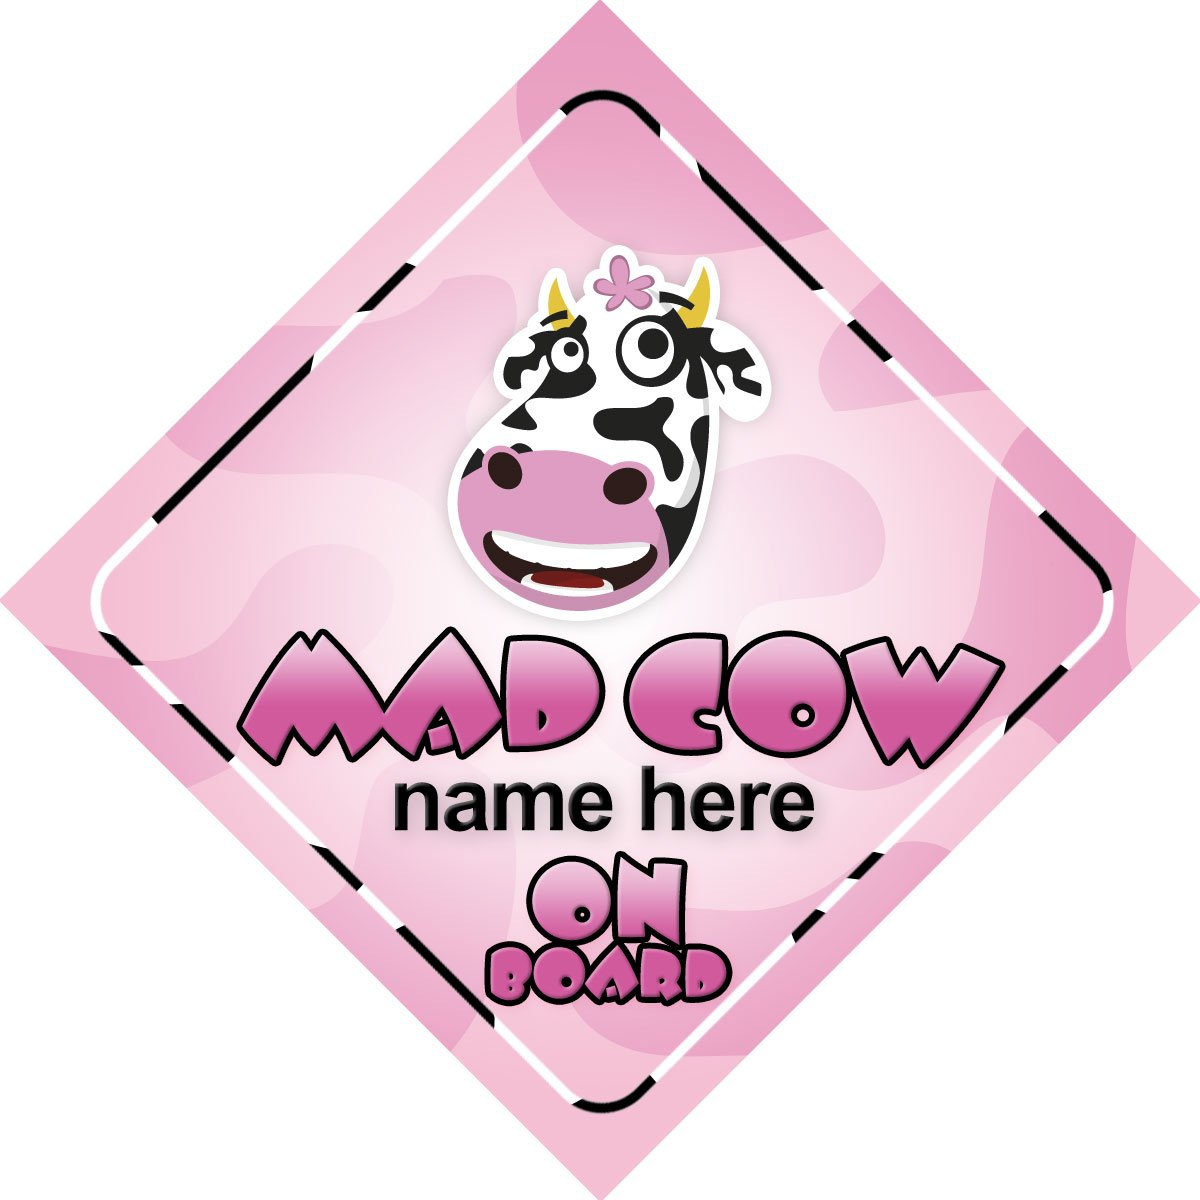 Mad Cow On Board Personalised Car Sign Joke / Novelty Gift / Present Quality Goods Ltd